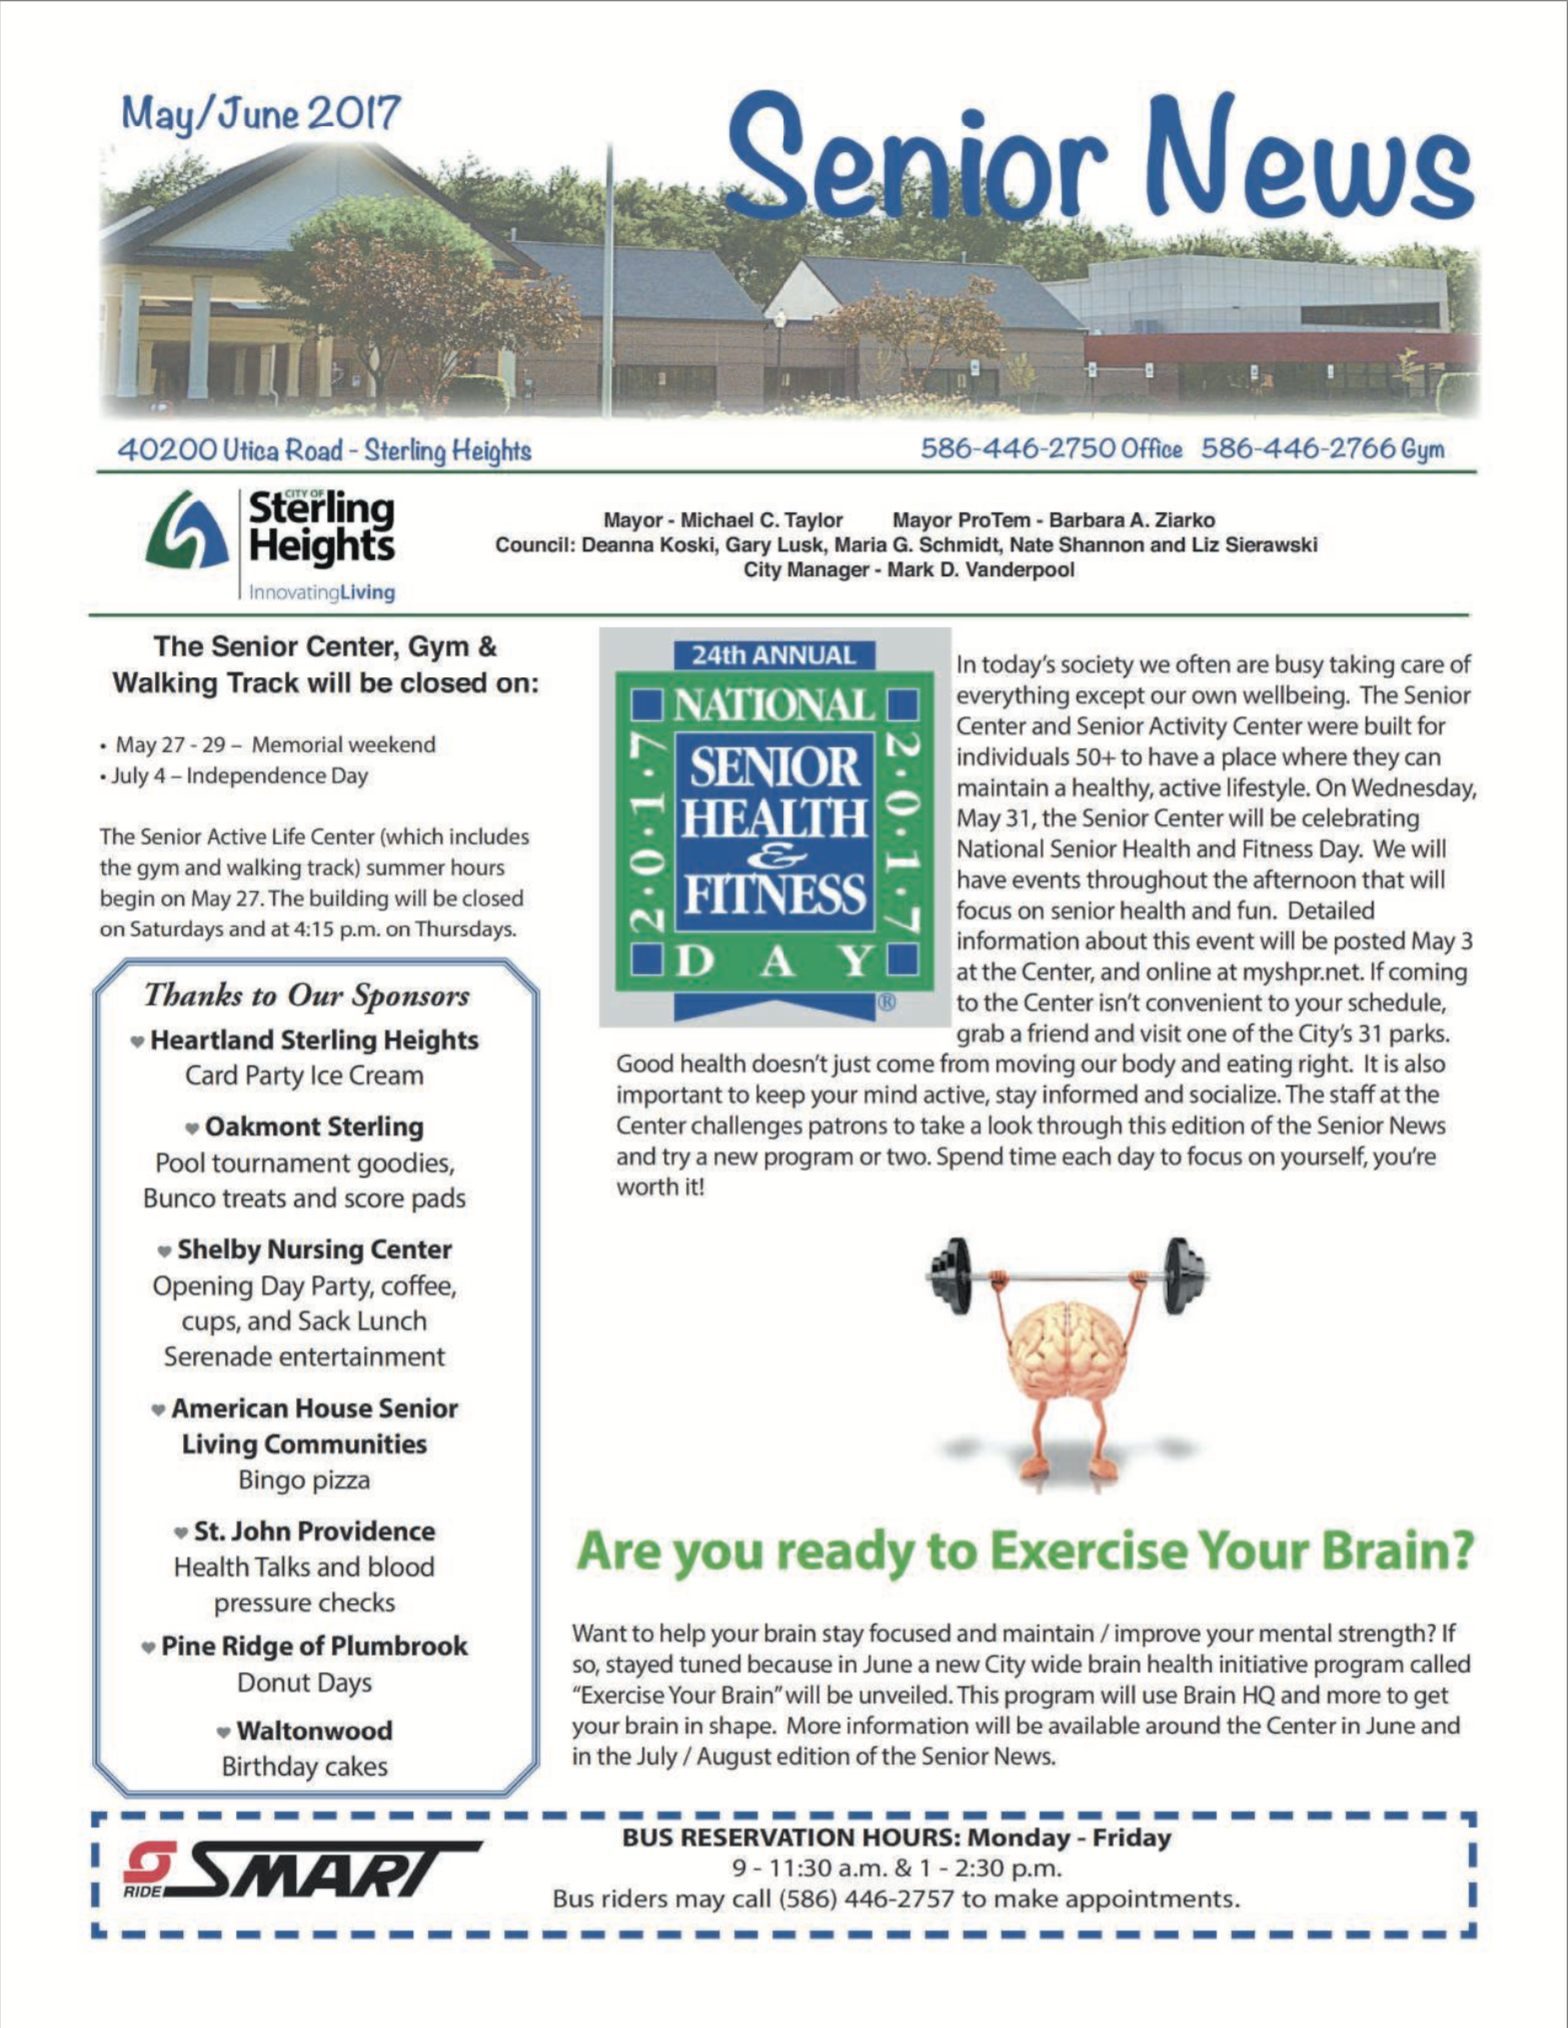 Senior News Letter May/June 2017